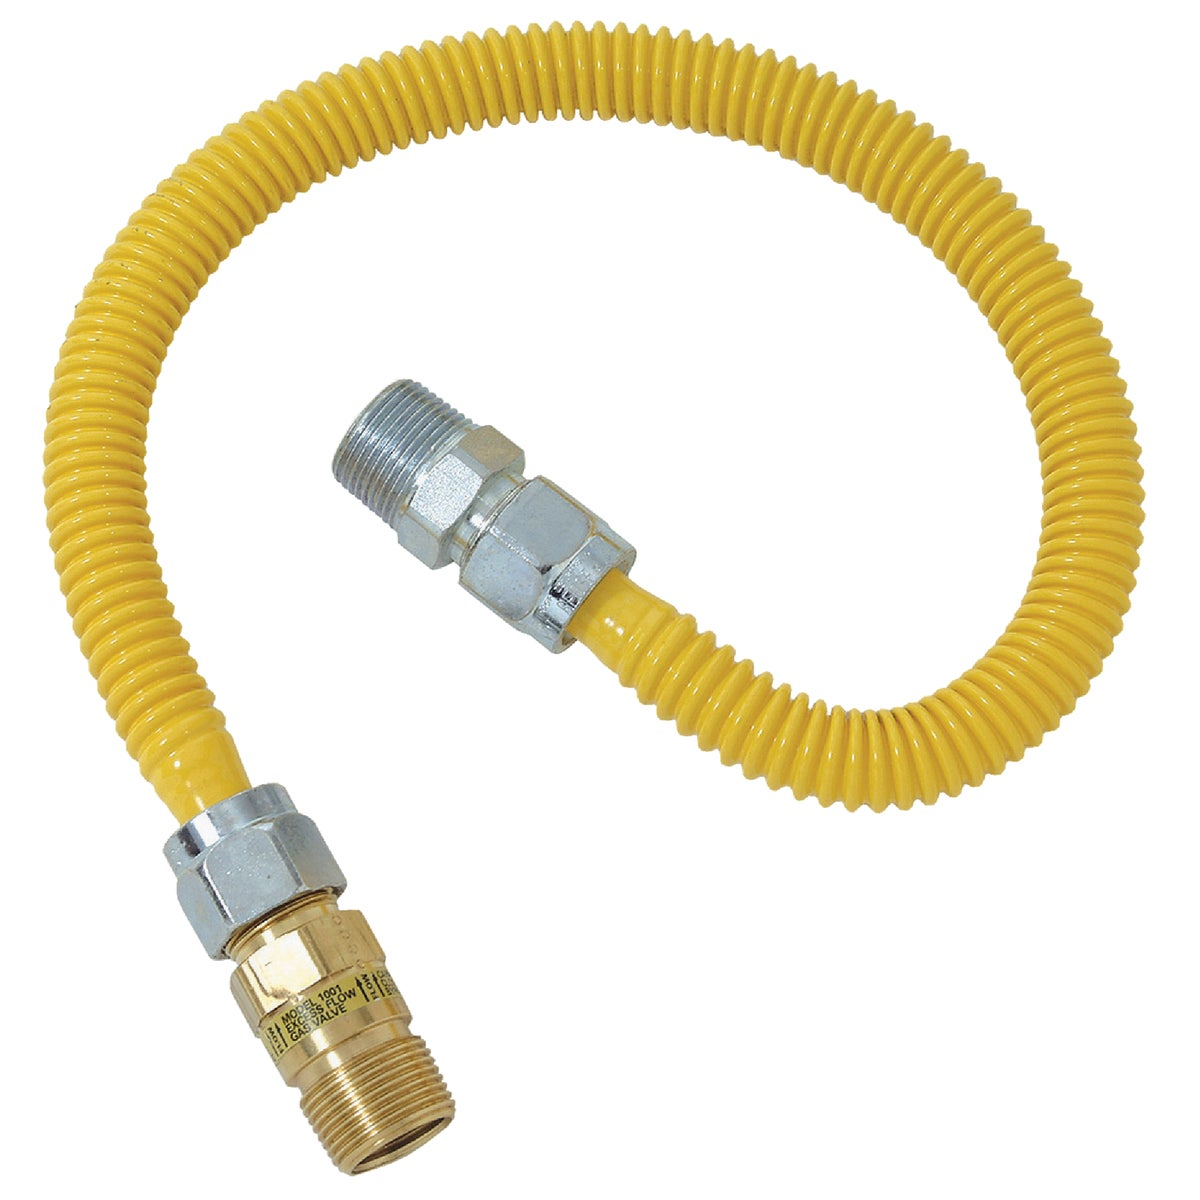 1/2X1/2-36 GAS CONNECTOR - CSSC44E-36P by Brass Craft